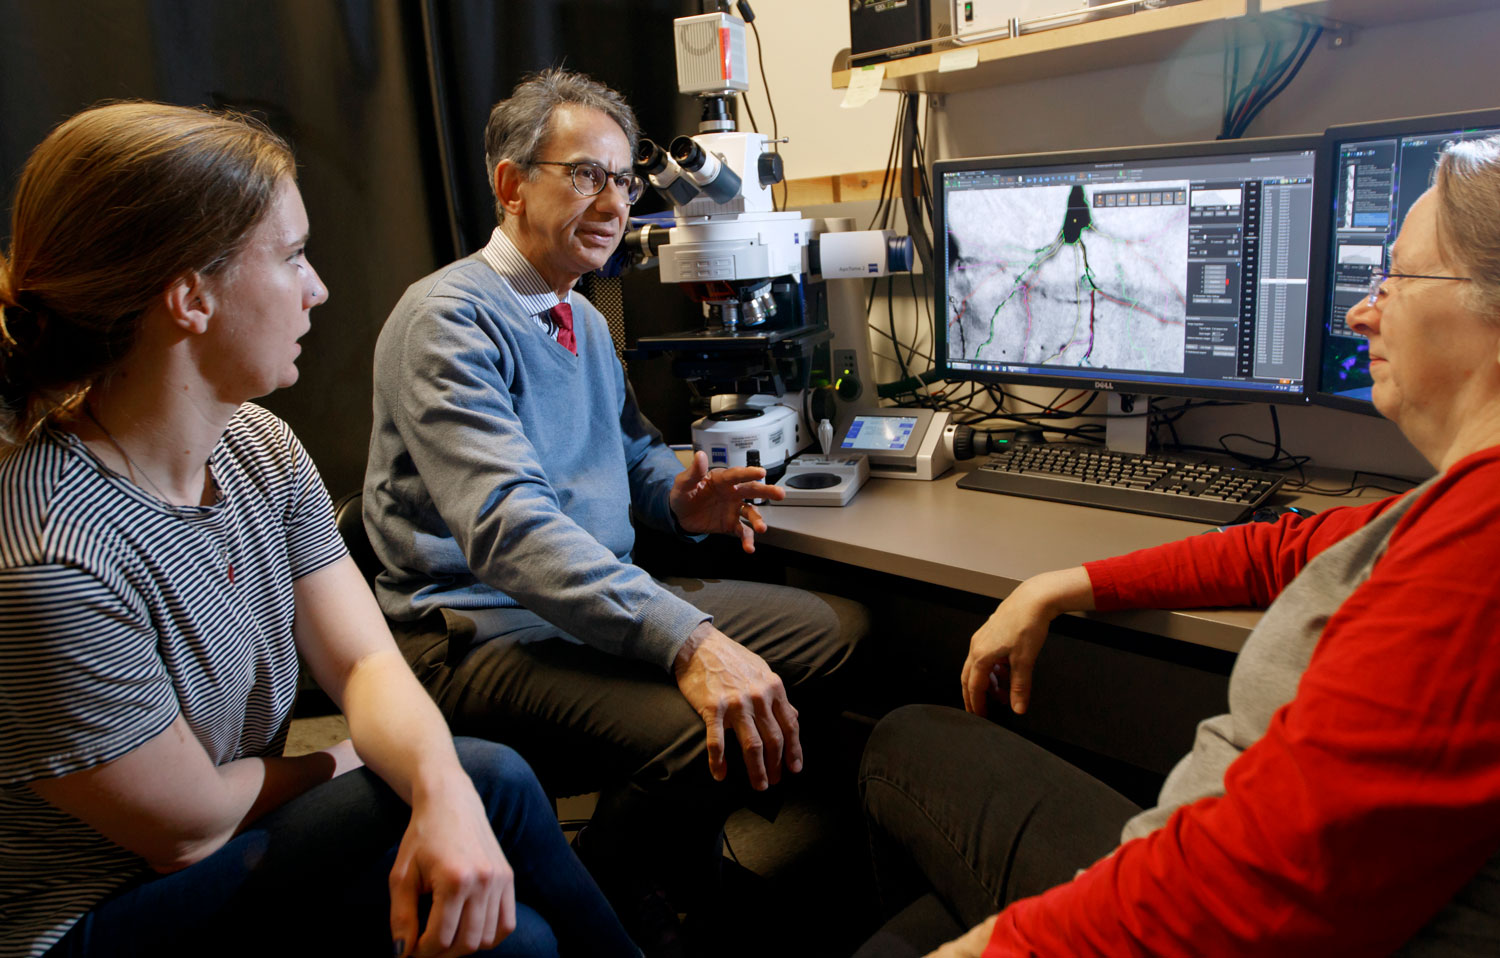 Researchers discussing a brain cell image